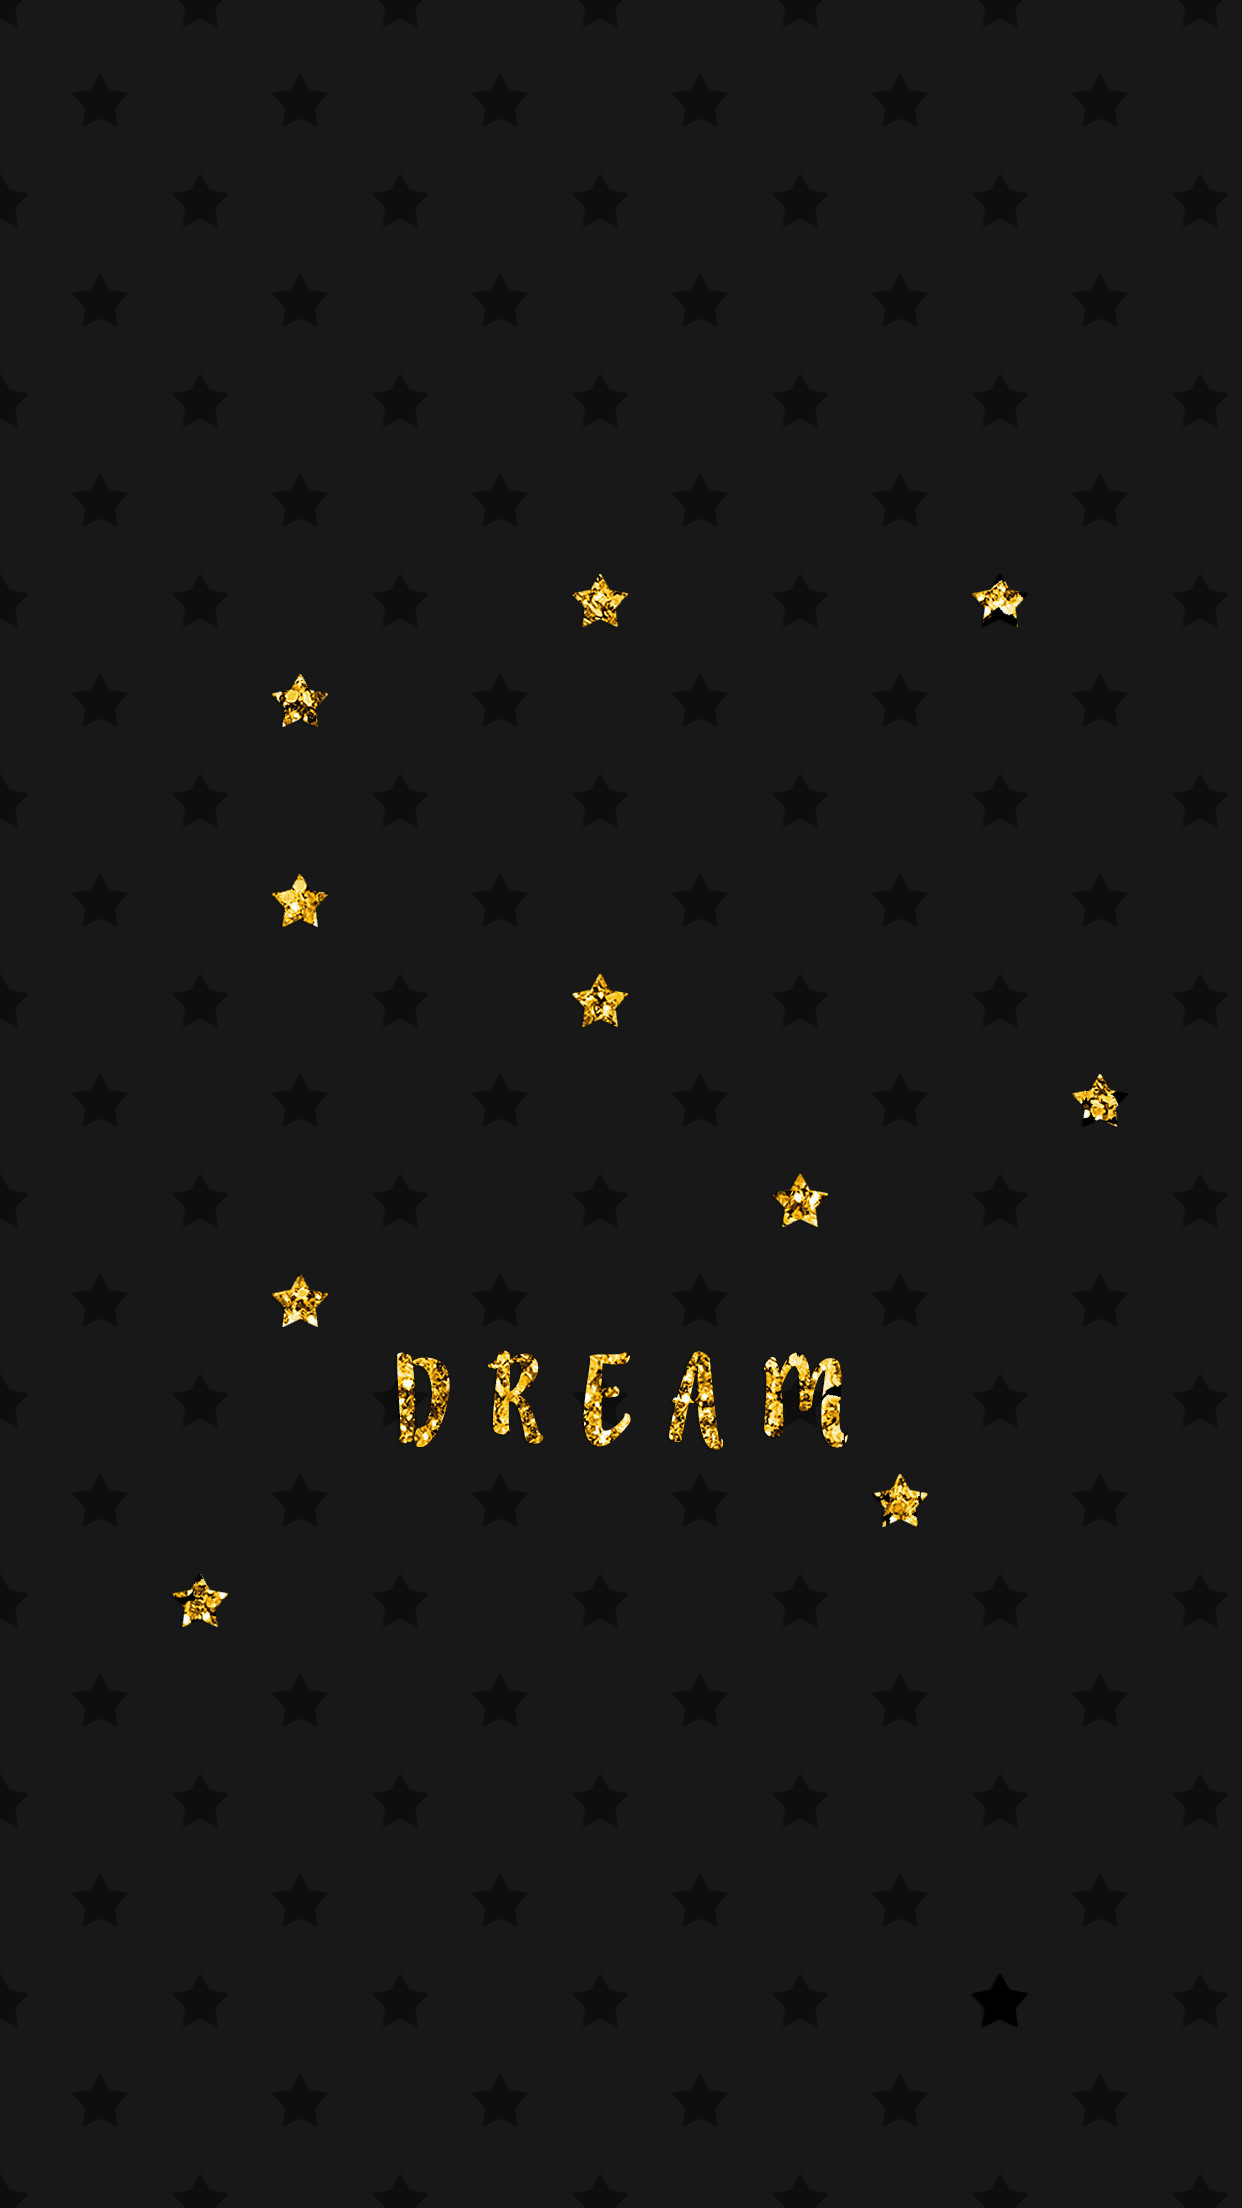 Res: 1242x2208, wallpaper, background, hd, iPhone, android, black, gold, glitter,